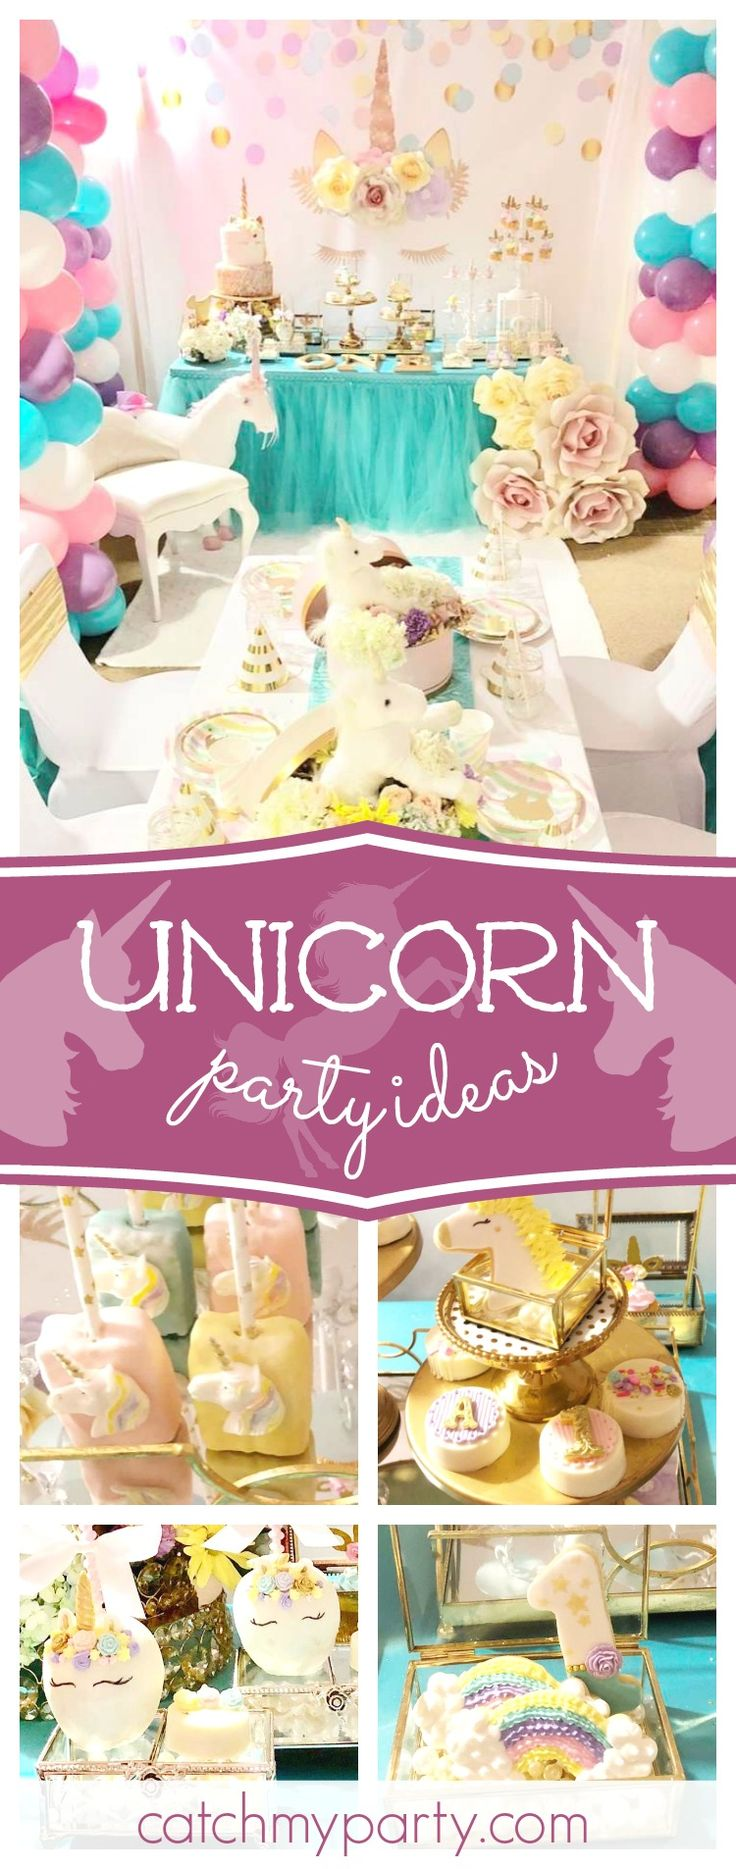 Check out this gorgeous Unicorn and Flowers birthday party! The dessert table is amazing!! See more party ideas and share yours at CatchMyParty.com #unicorn #partyideas